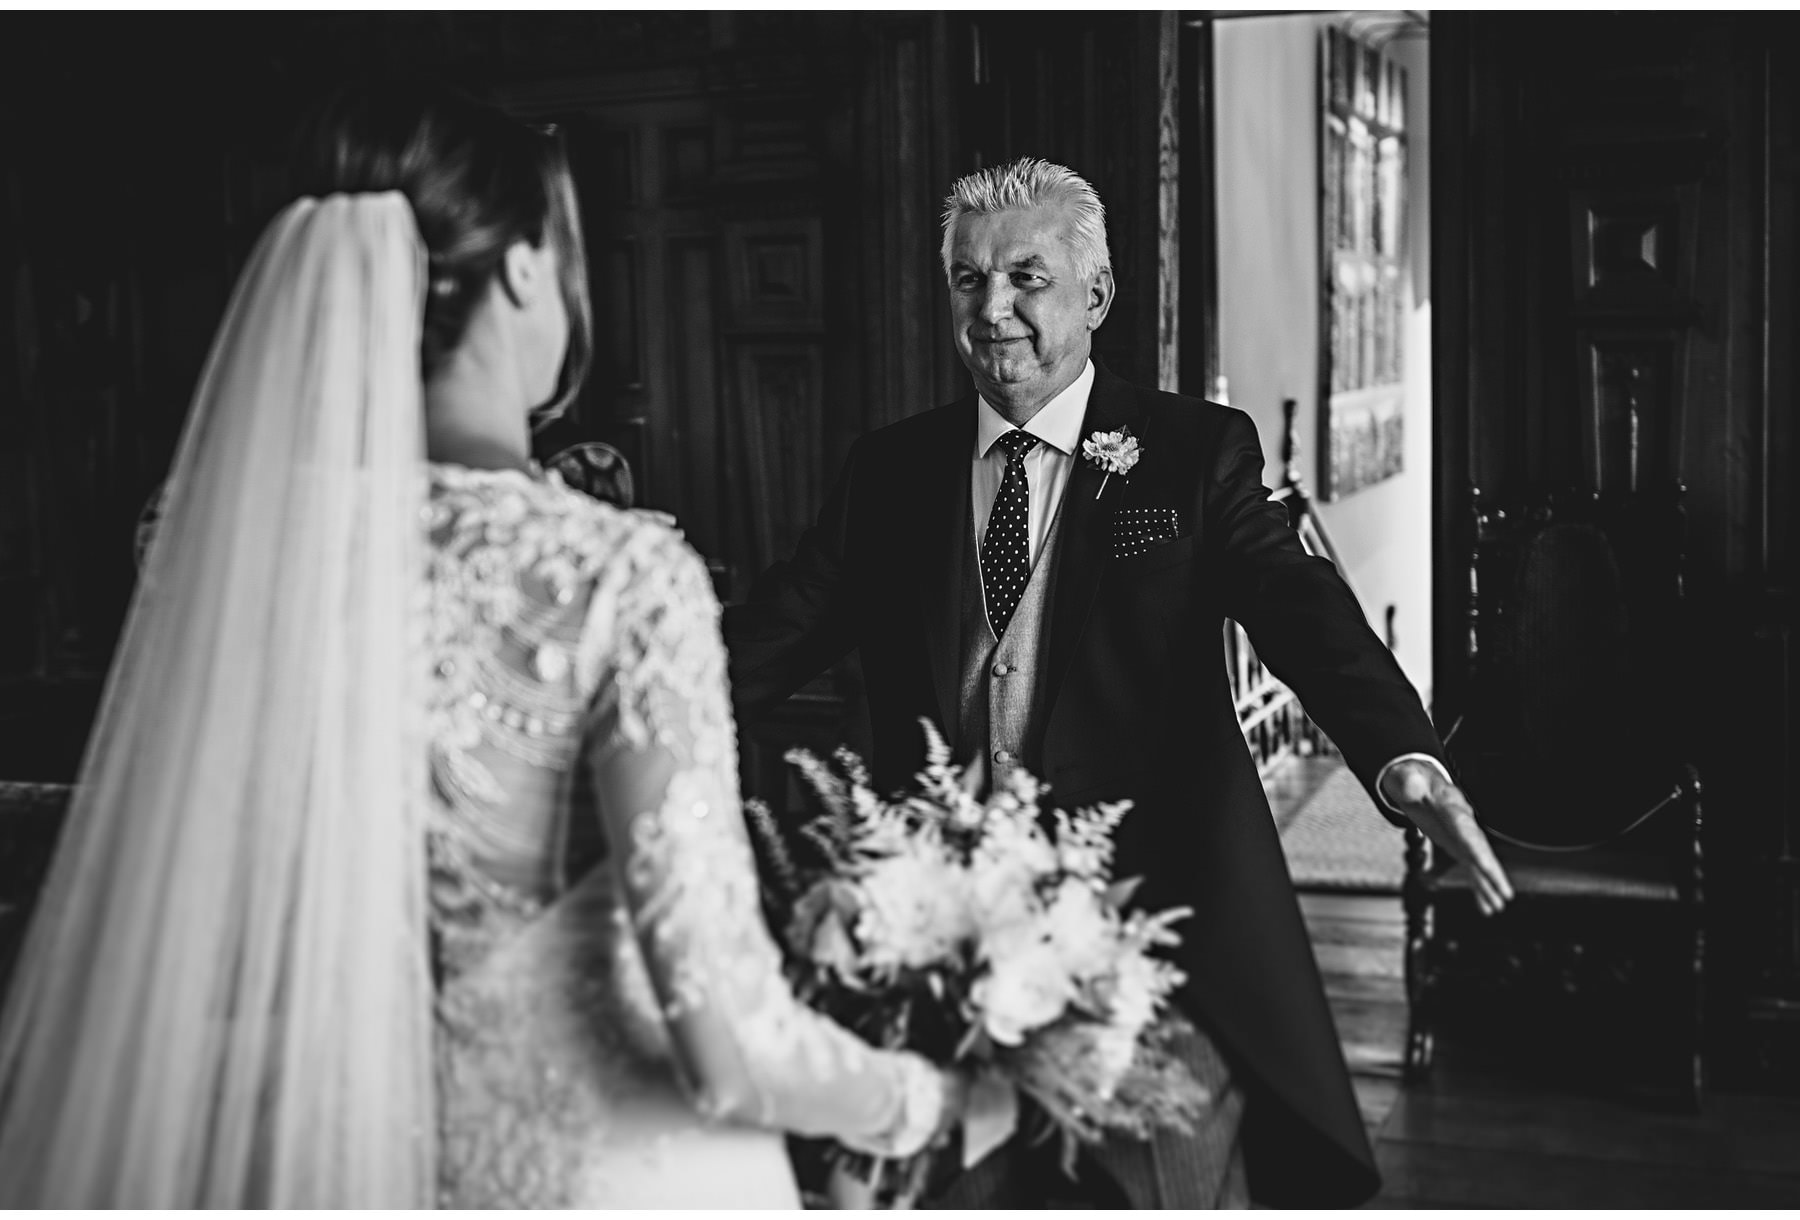 the father of the bride seeing his daughter